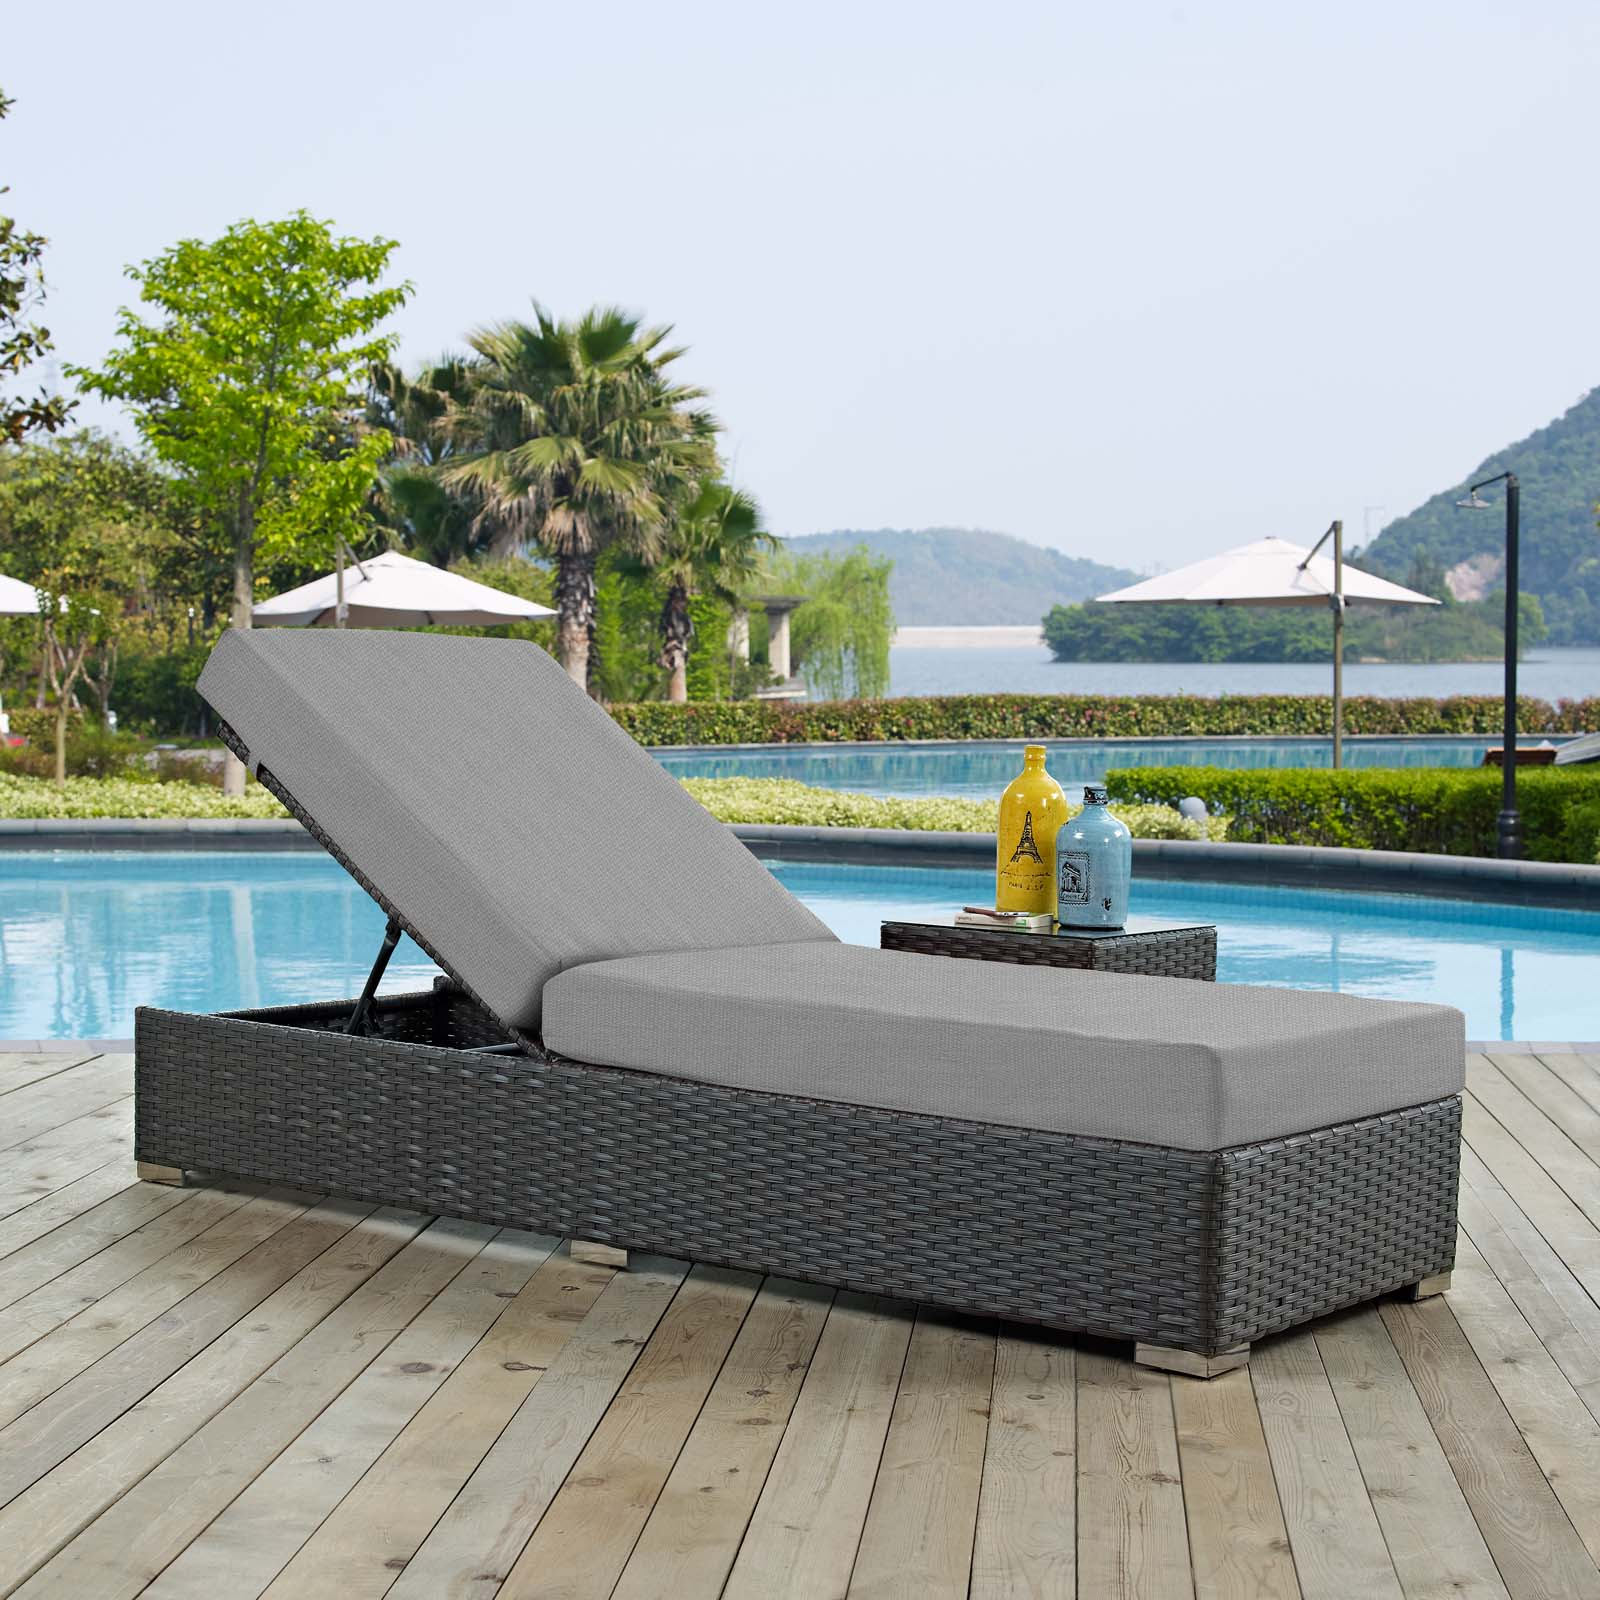 Sojourn Outdoor Patio Sunbrella Chaise Lounge Canvas Gray EEI-1862-CHC-GRY